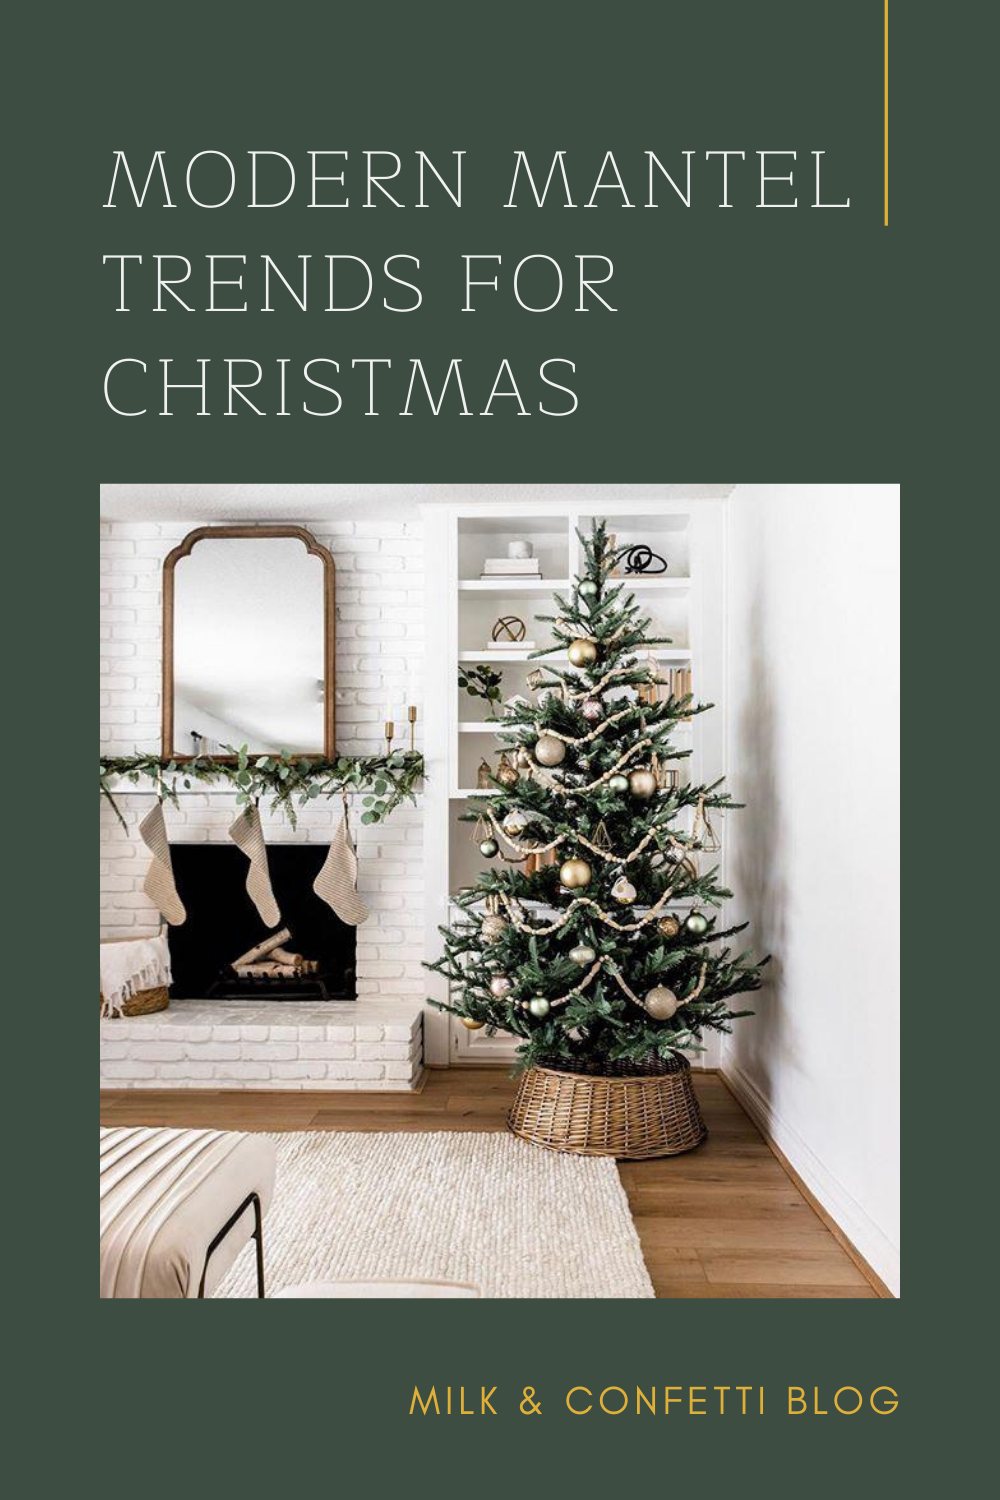 A white Christmas holiday fireplace with a mantel decorated with greenery, candles, a mirror and stockings for a cozy and modern look.